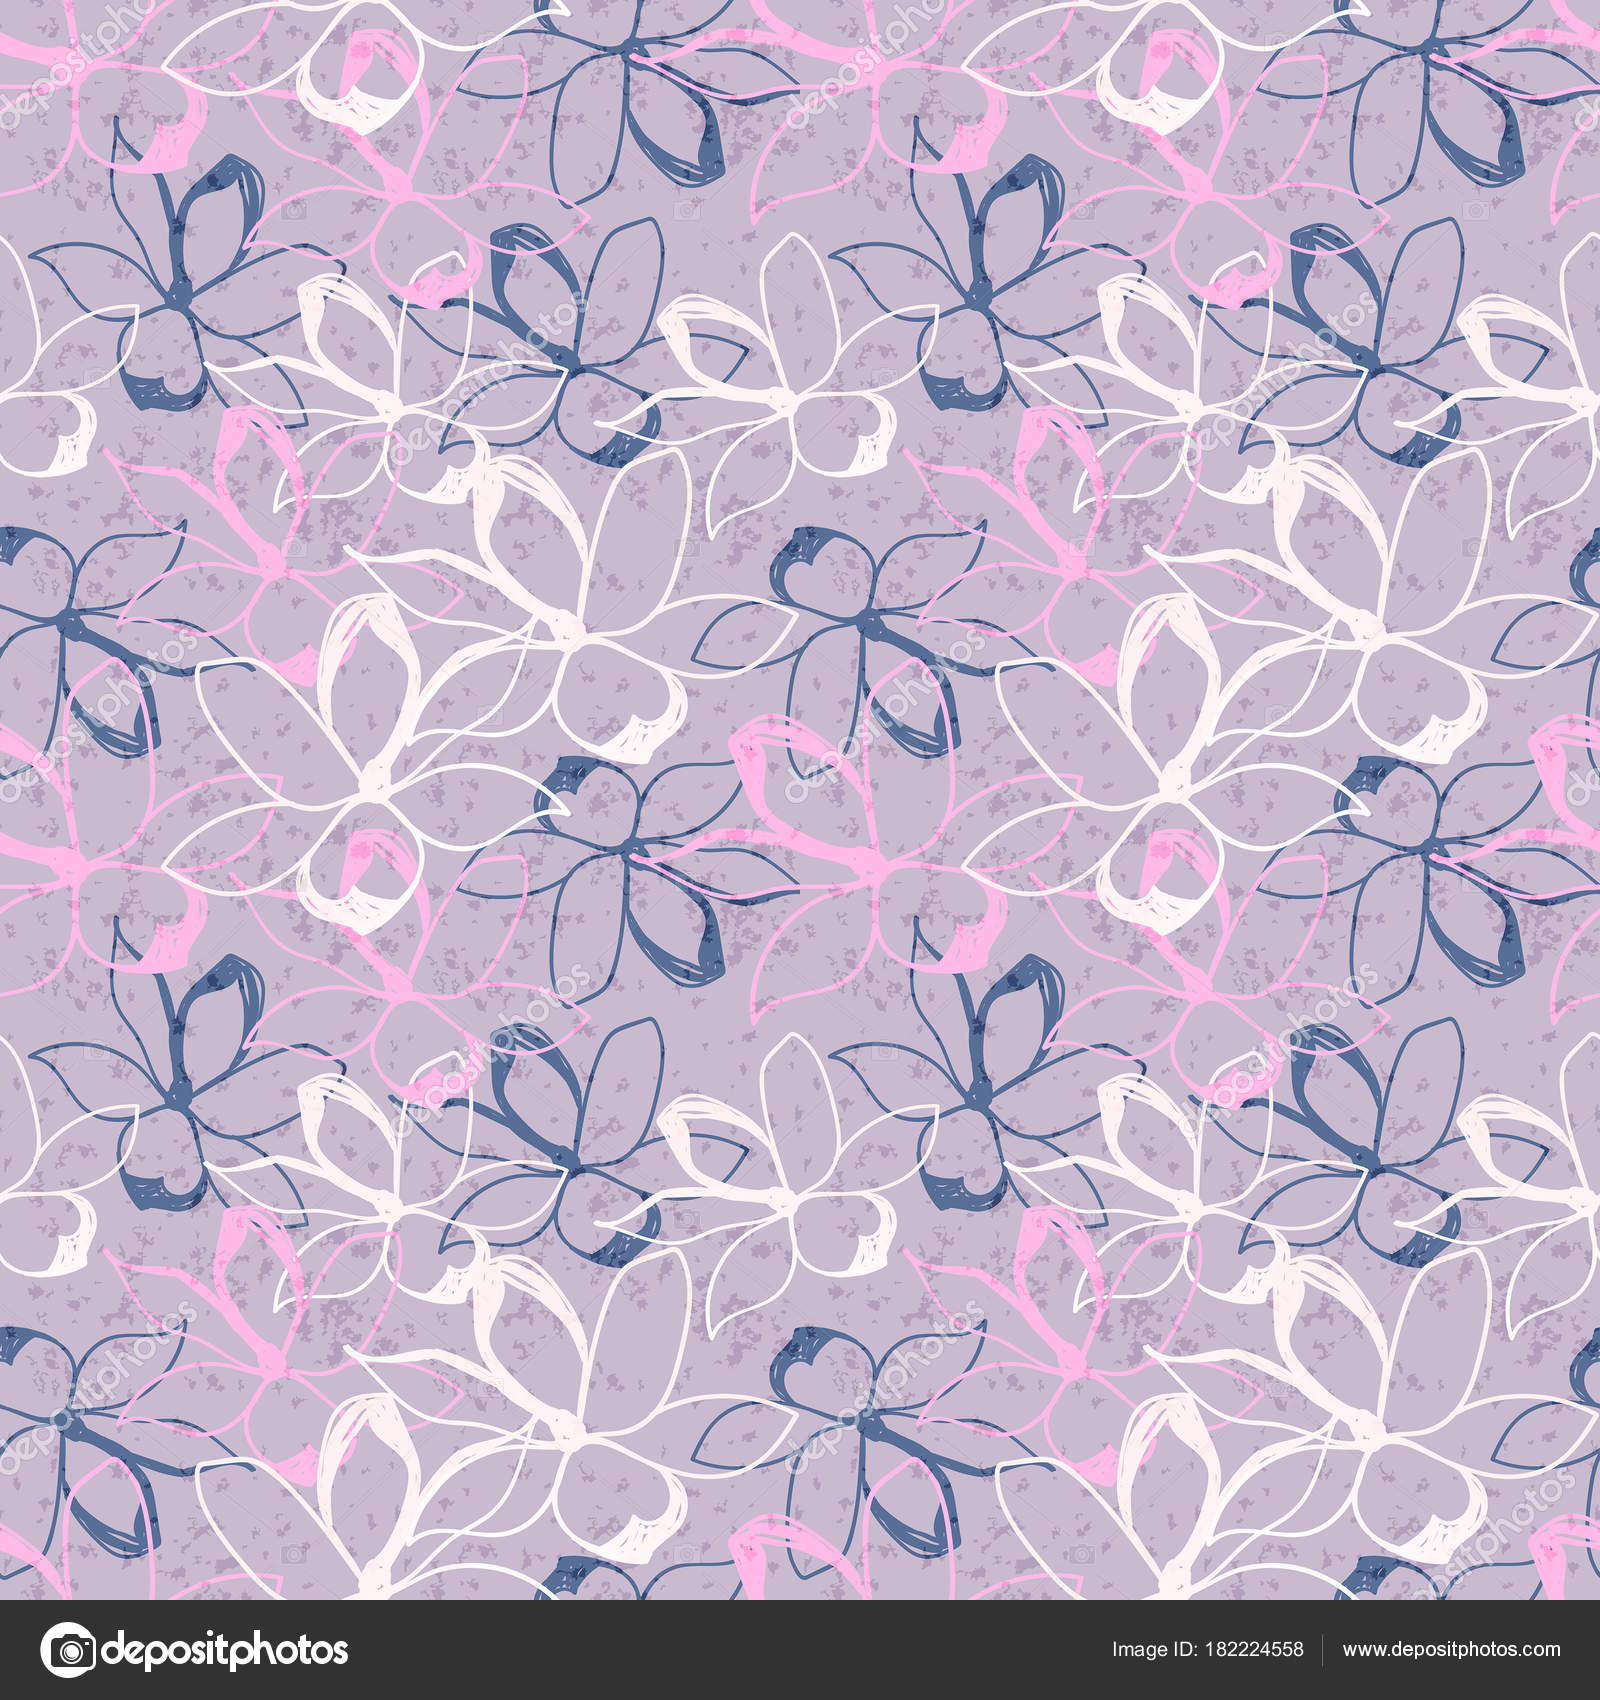 vector illustration design elegant floral seamless pattern